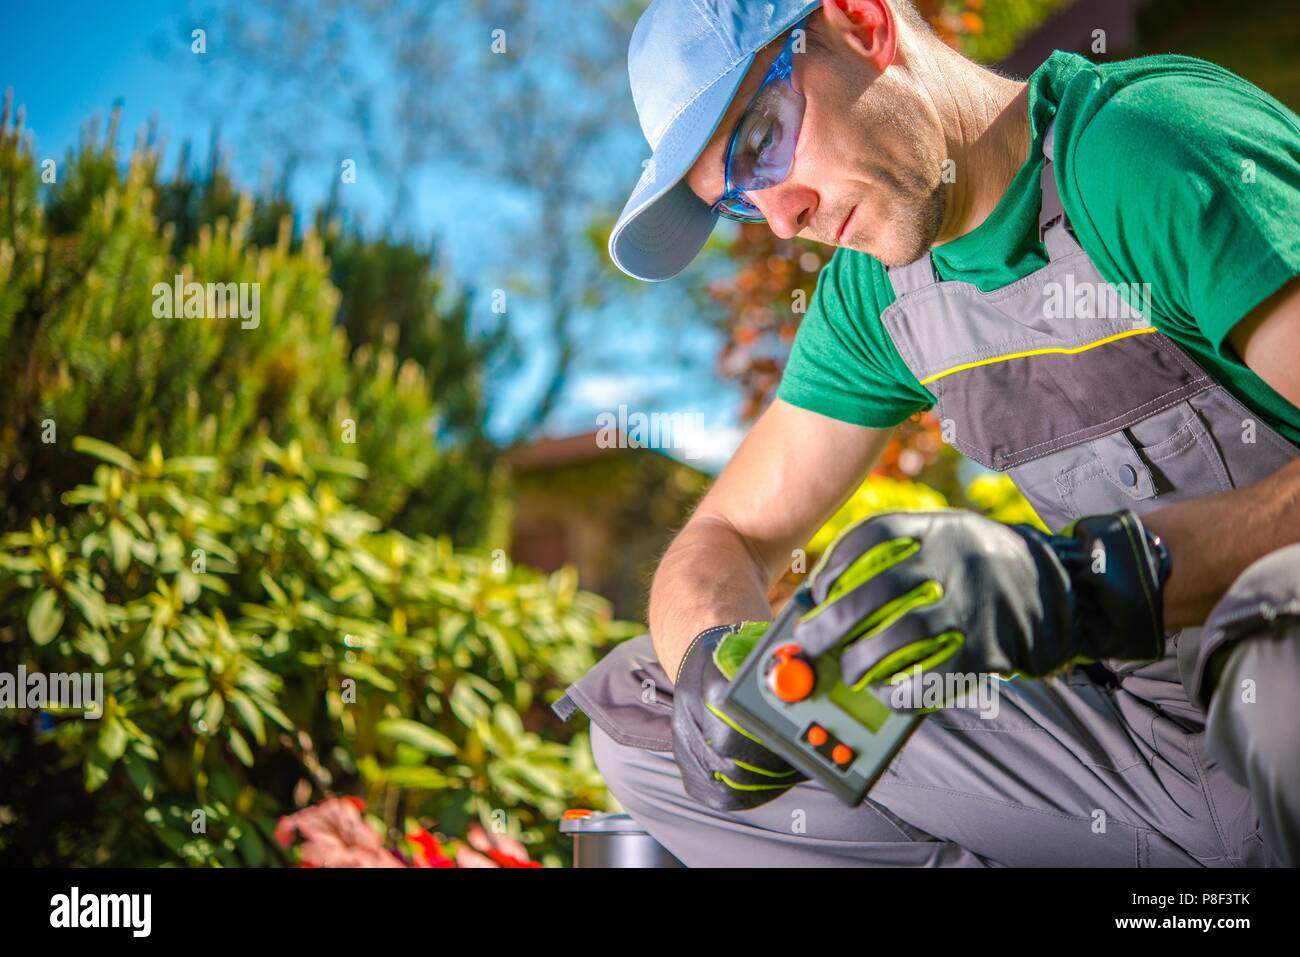 Water Supply Controller in Hand of Professional Garden Technician. - Stock Image